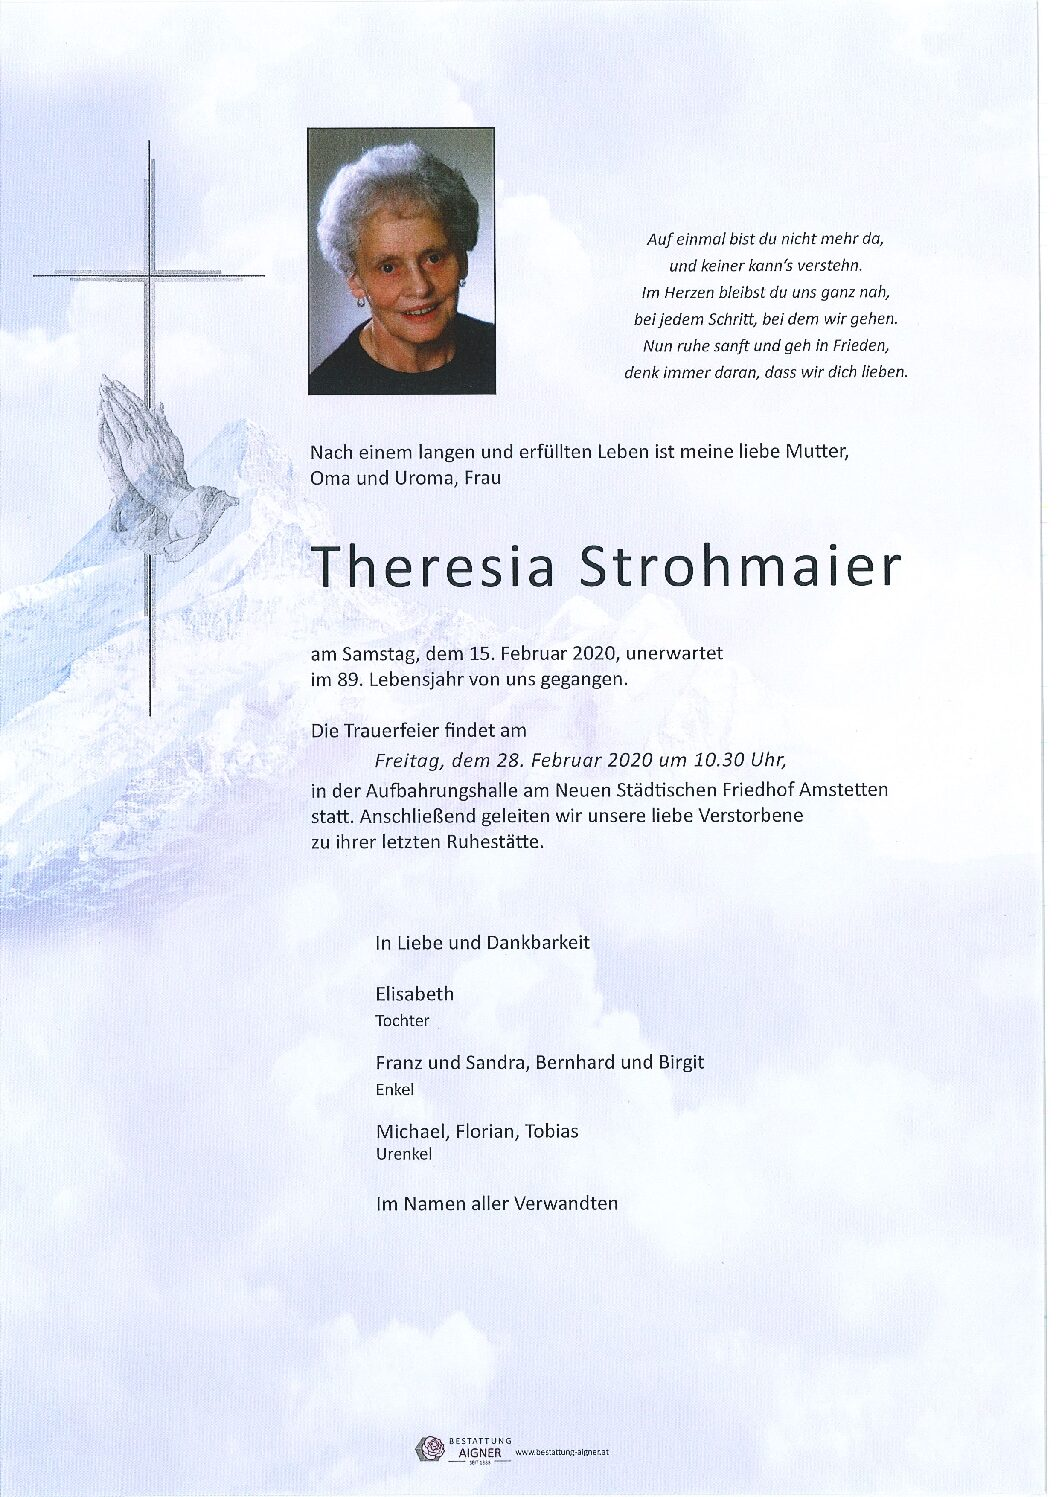 Theresia Strohmaier